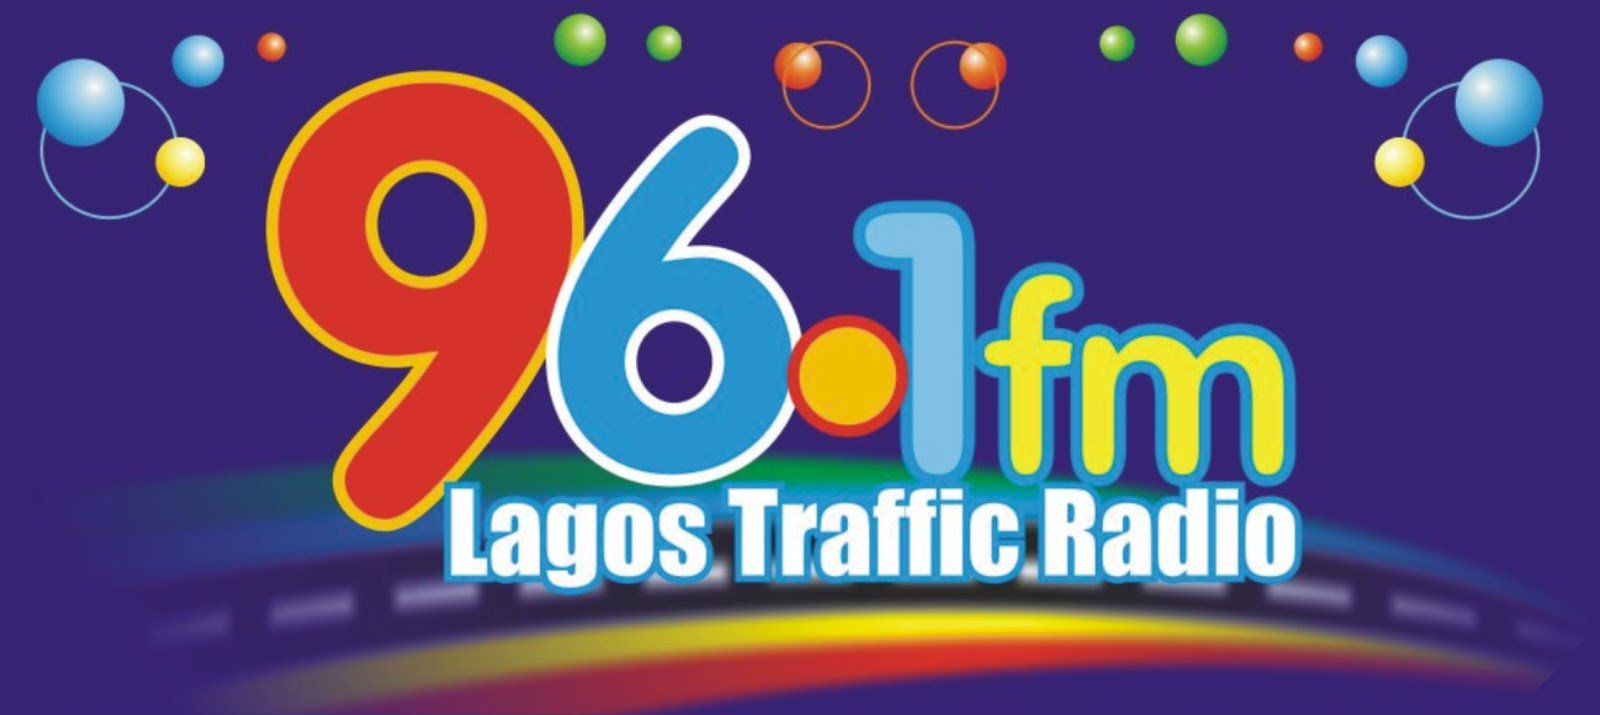 Lagos-Traffic-Radio-Logo